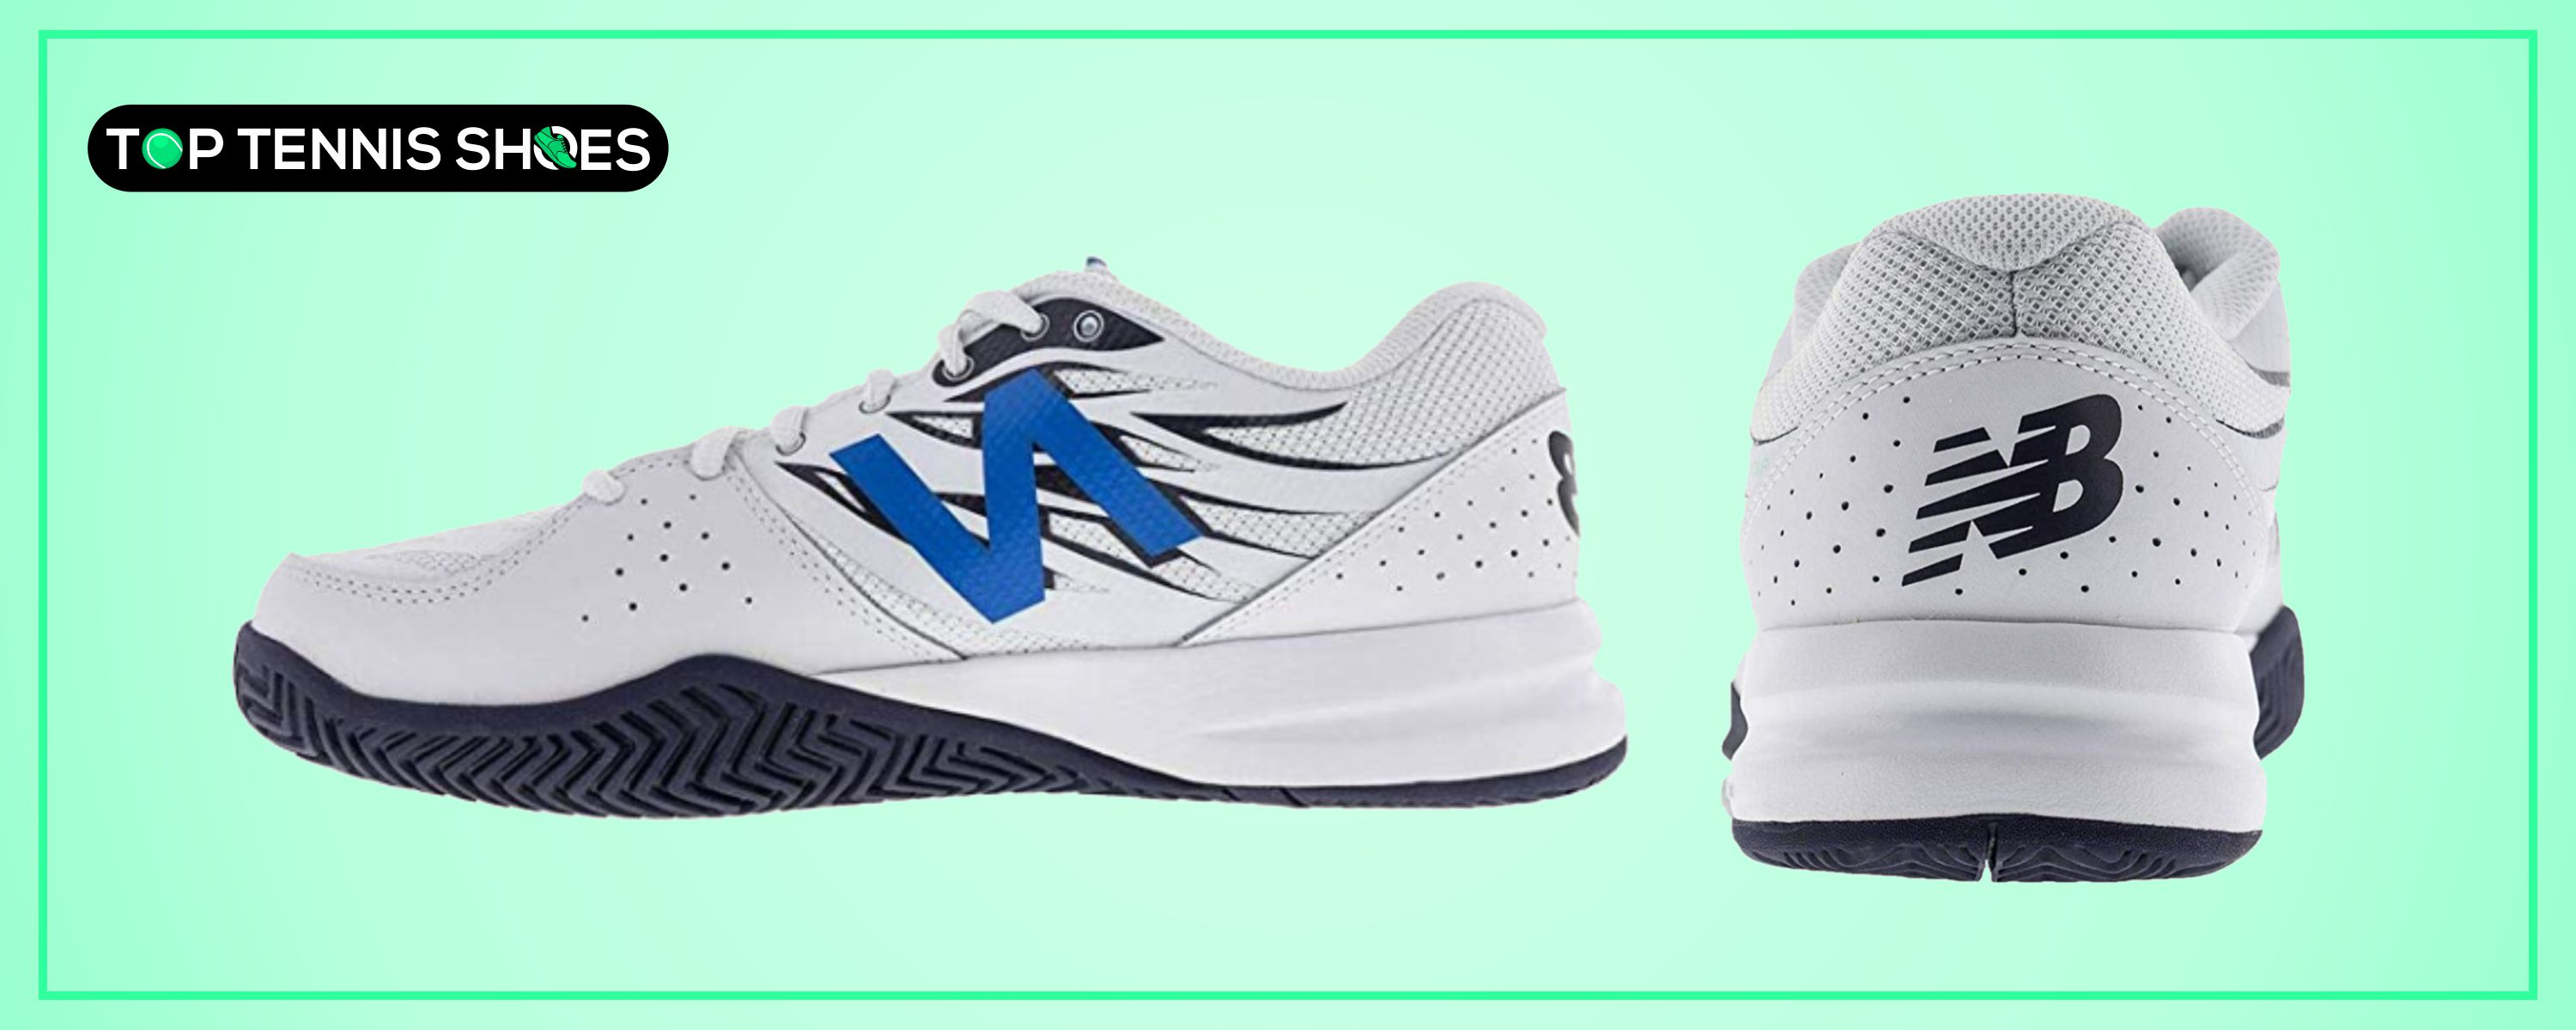 best hard court tennis shoes 2019